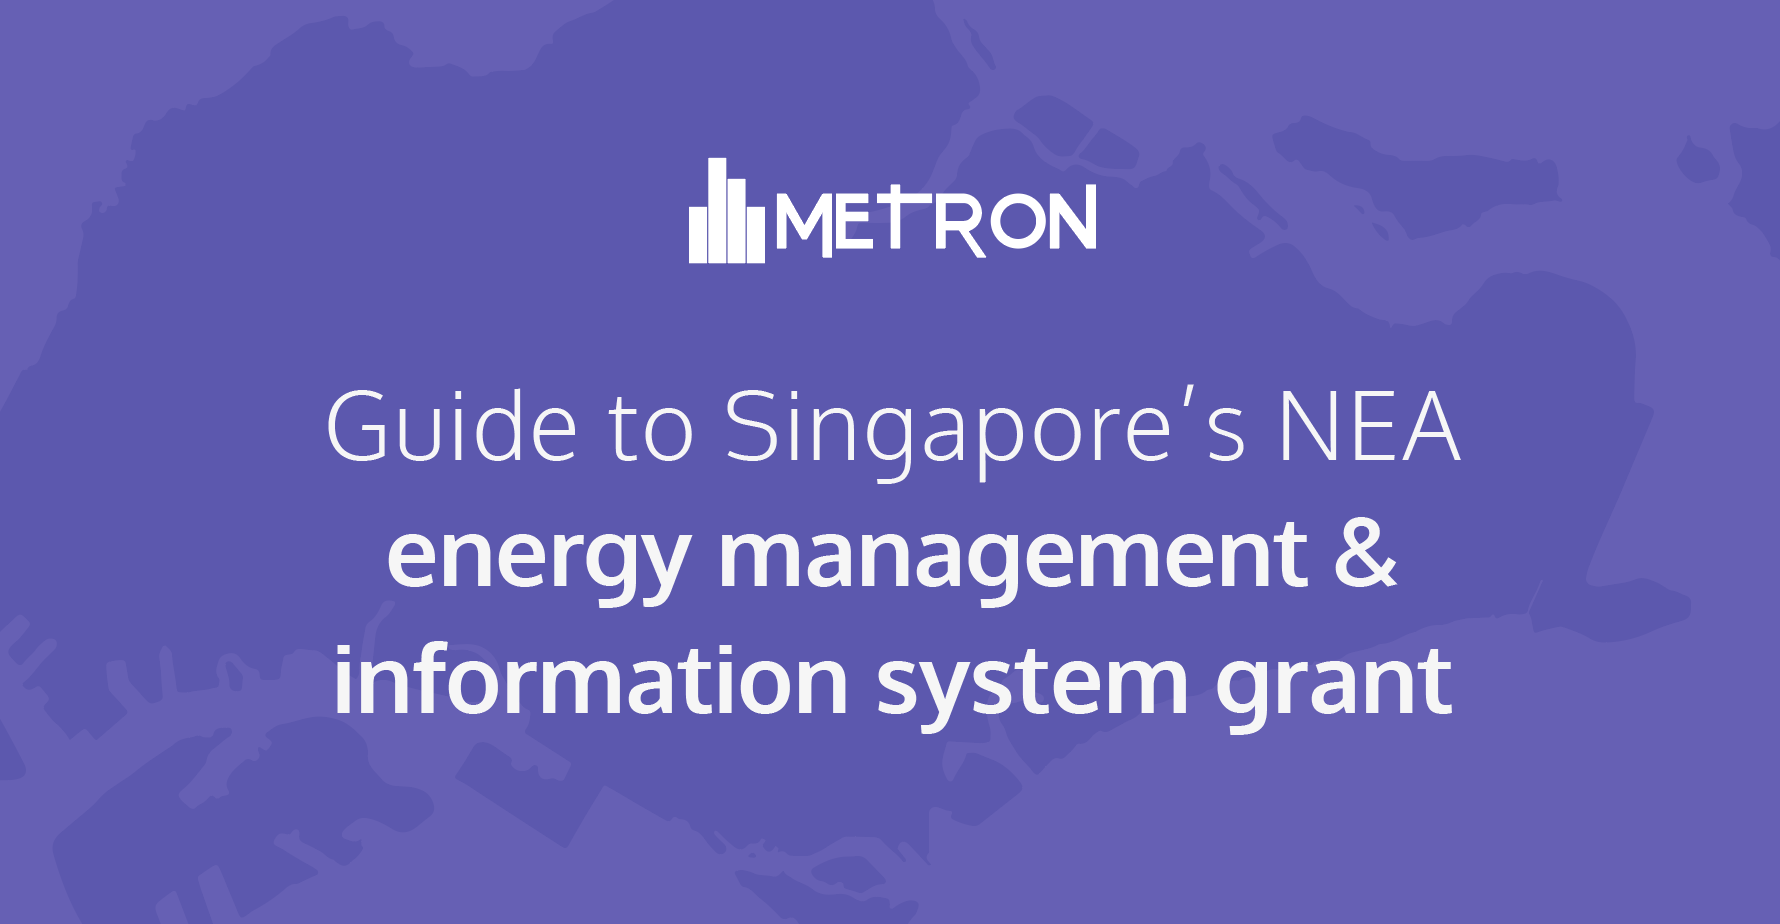 [Infographic] Your guide to Singapore's NEA EMIS Grant